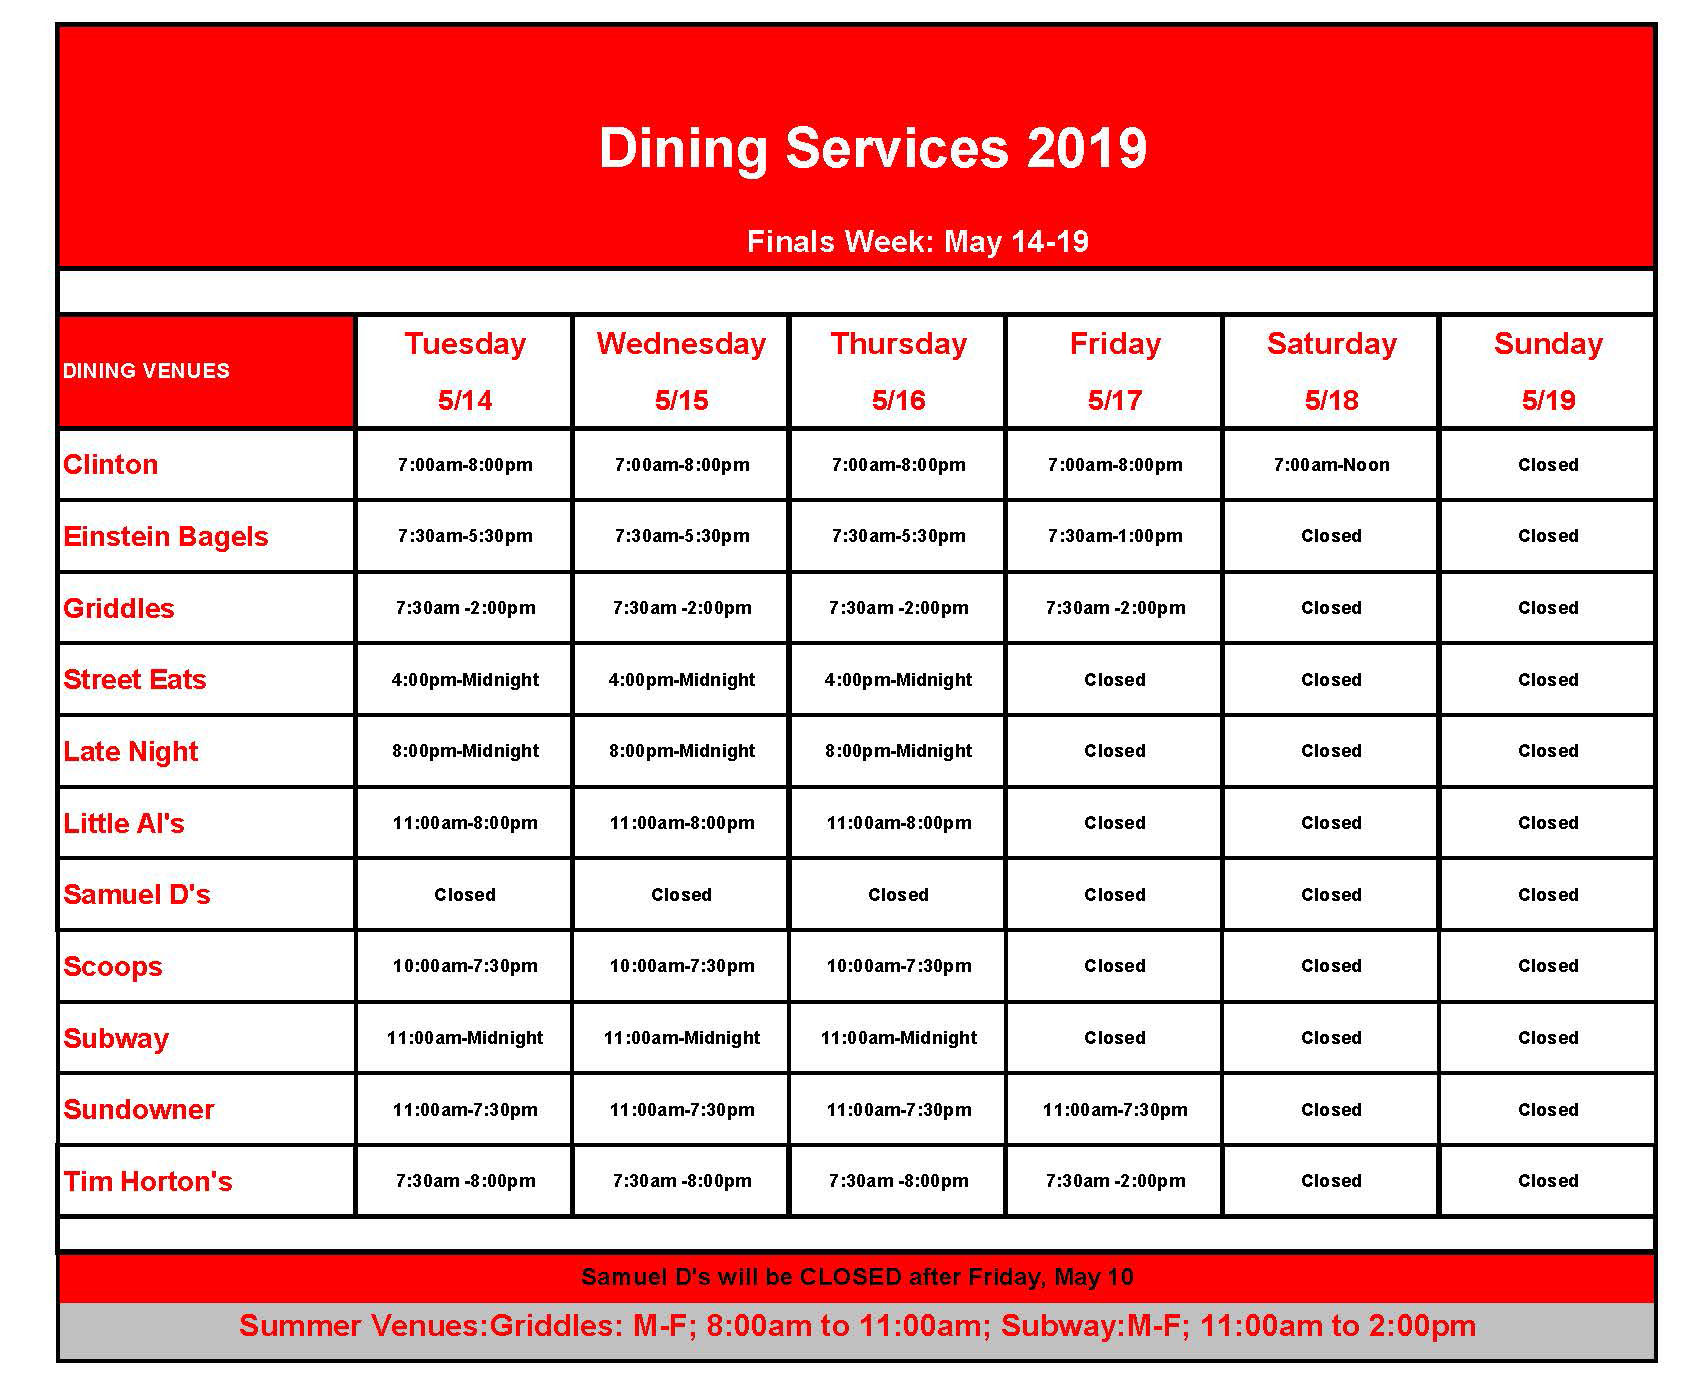 May 2019 Finals Week Dining Services Hours